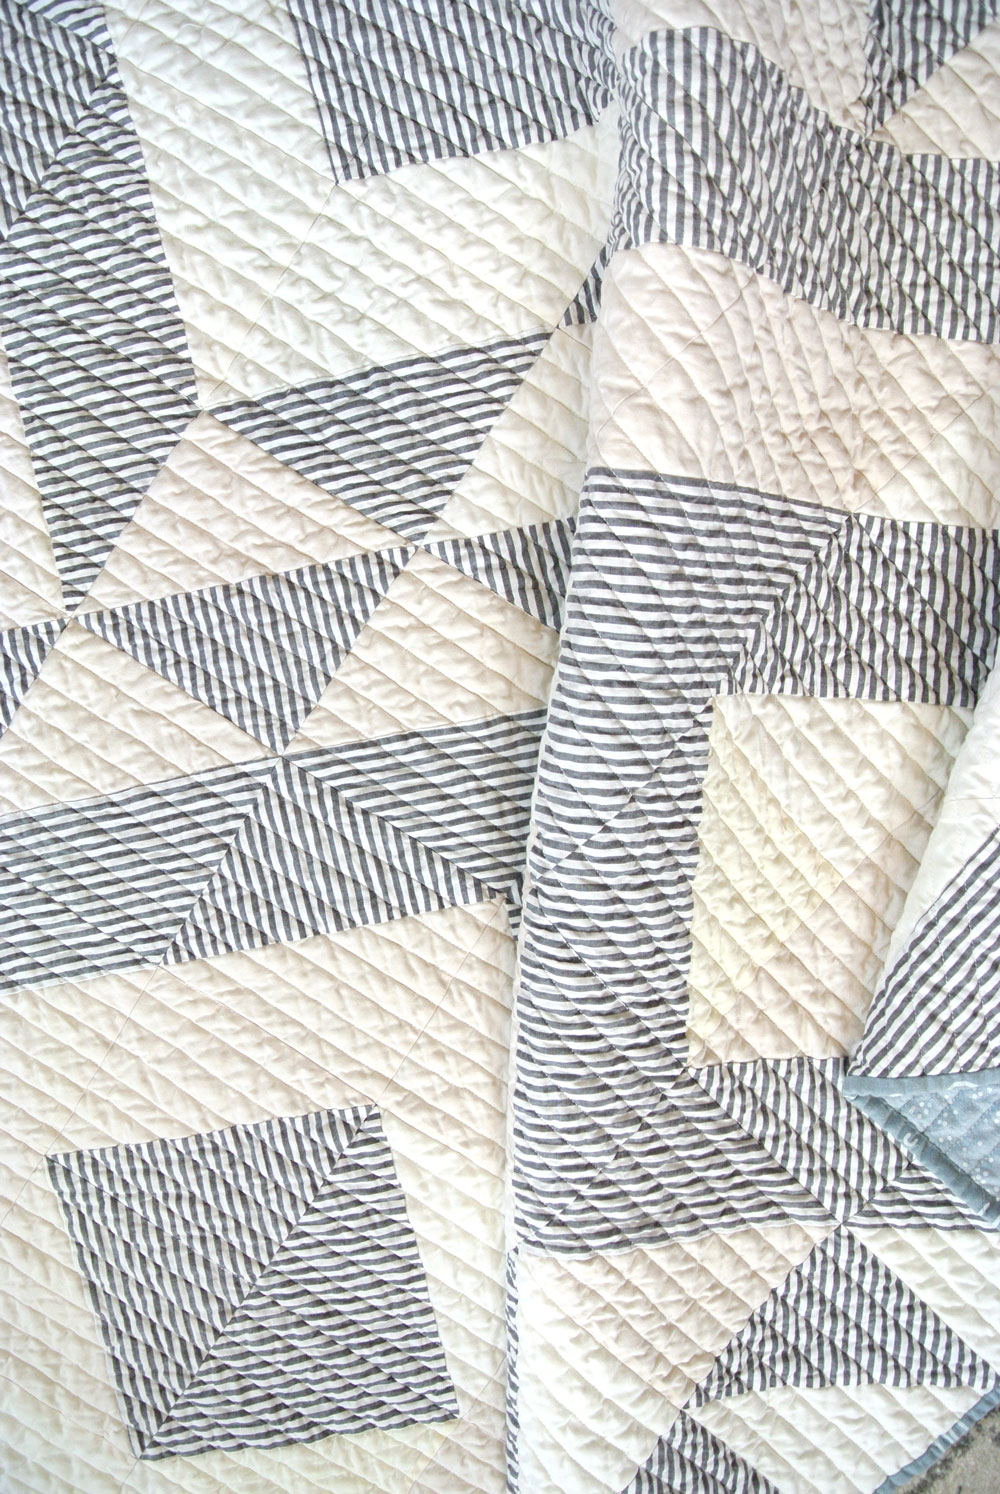 The crinkled straight line quilting on this Triangle Jitters quilt shows what fabric looks like after it is washed